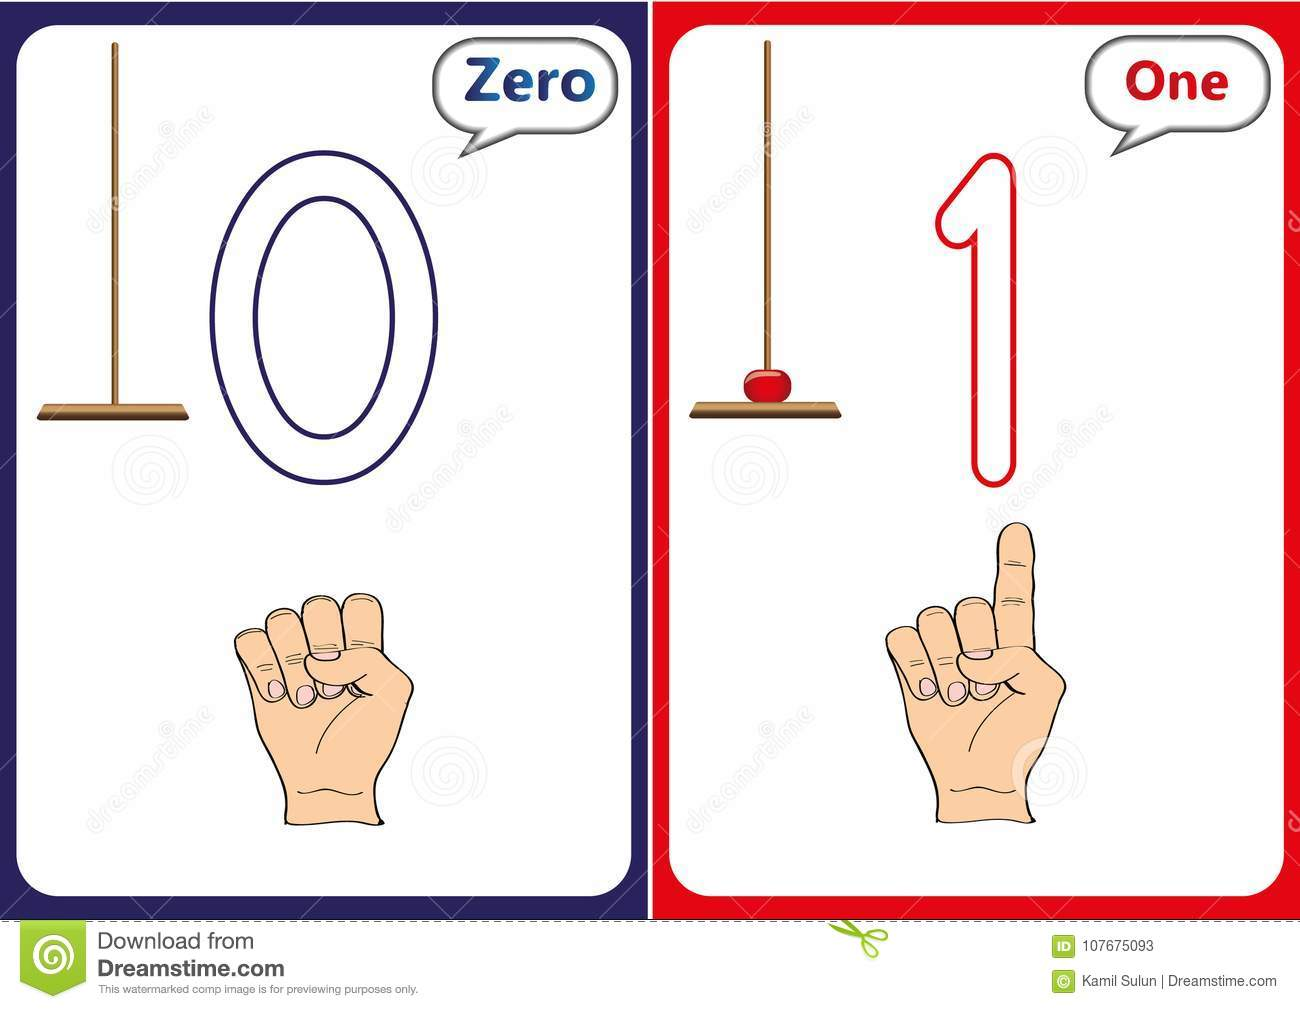 Zero Worksheet For Preschool